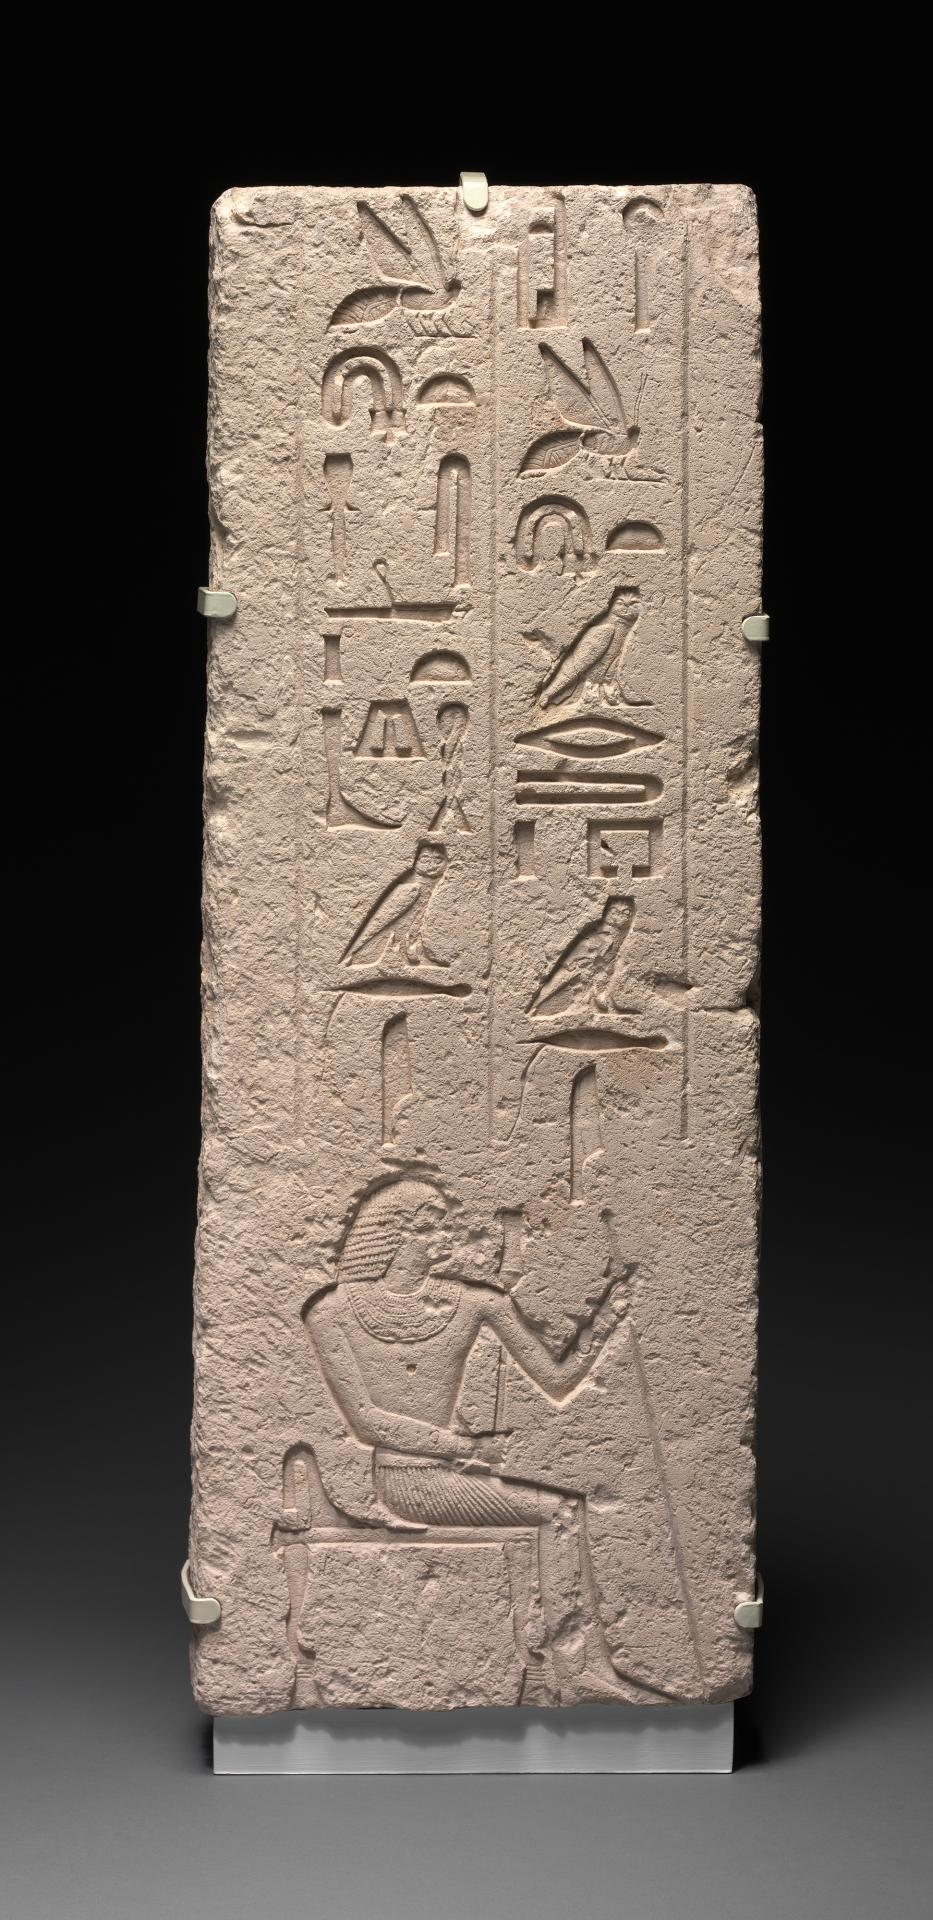 Door jamb from the tomb of Mehi